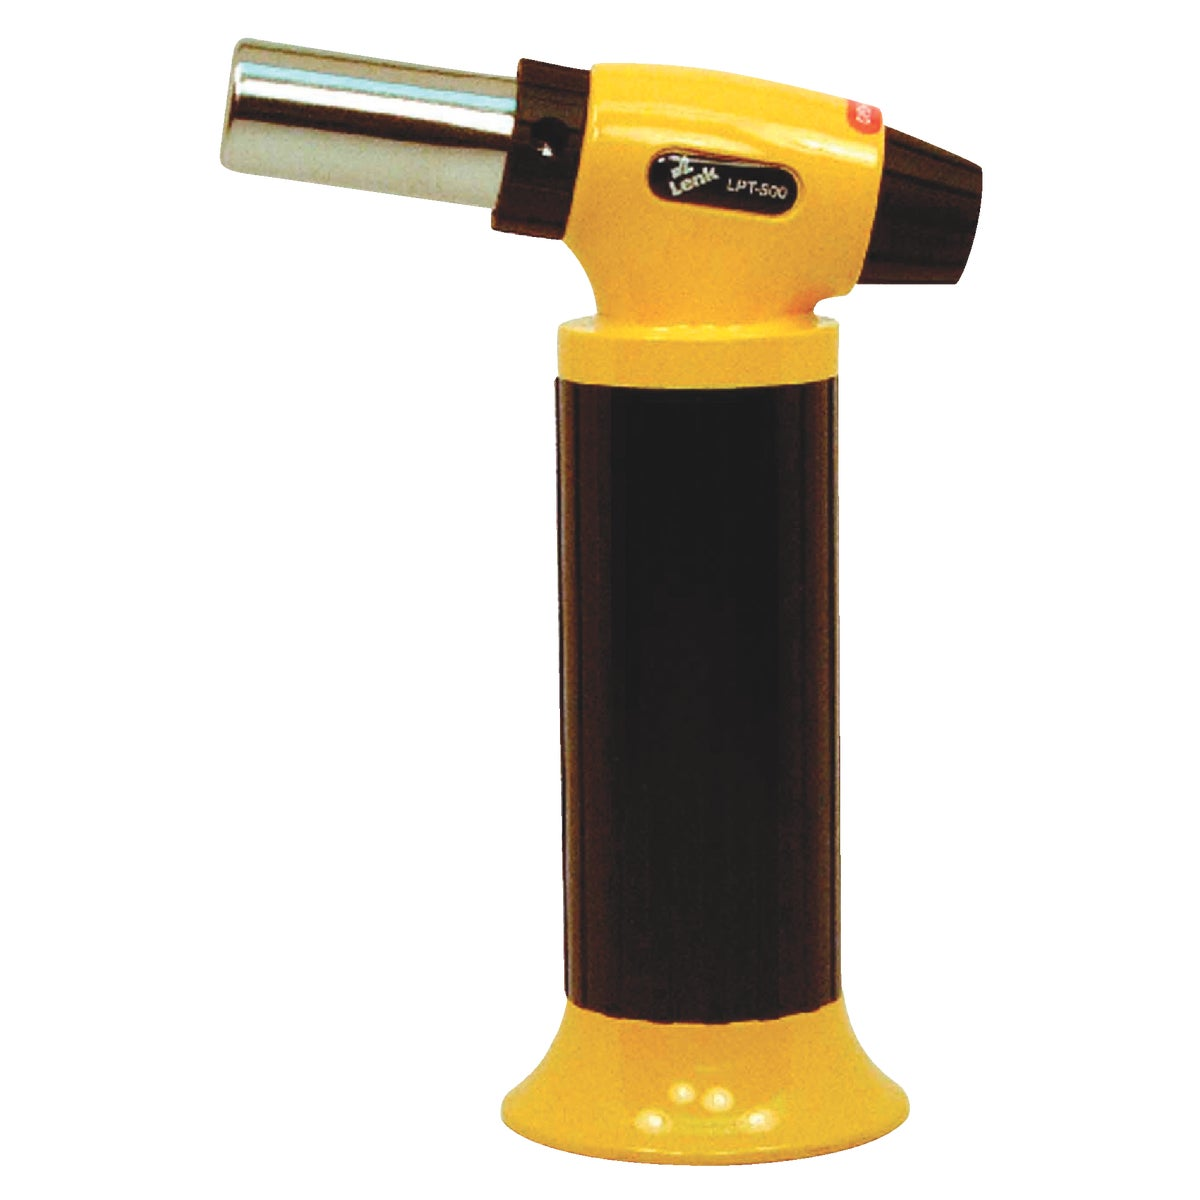 BUTANE TORCH - LPT-500 by Wall Lenk Corp